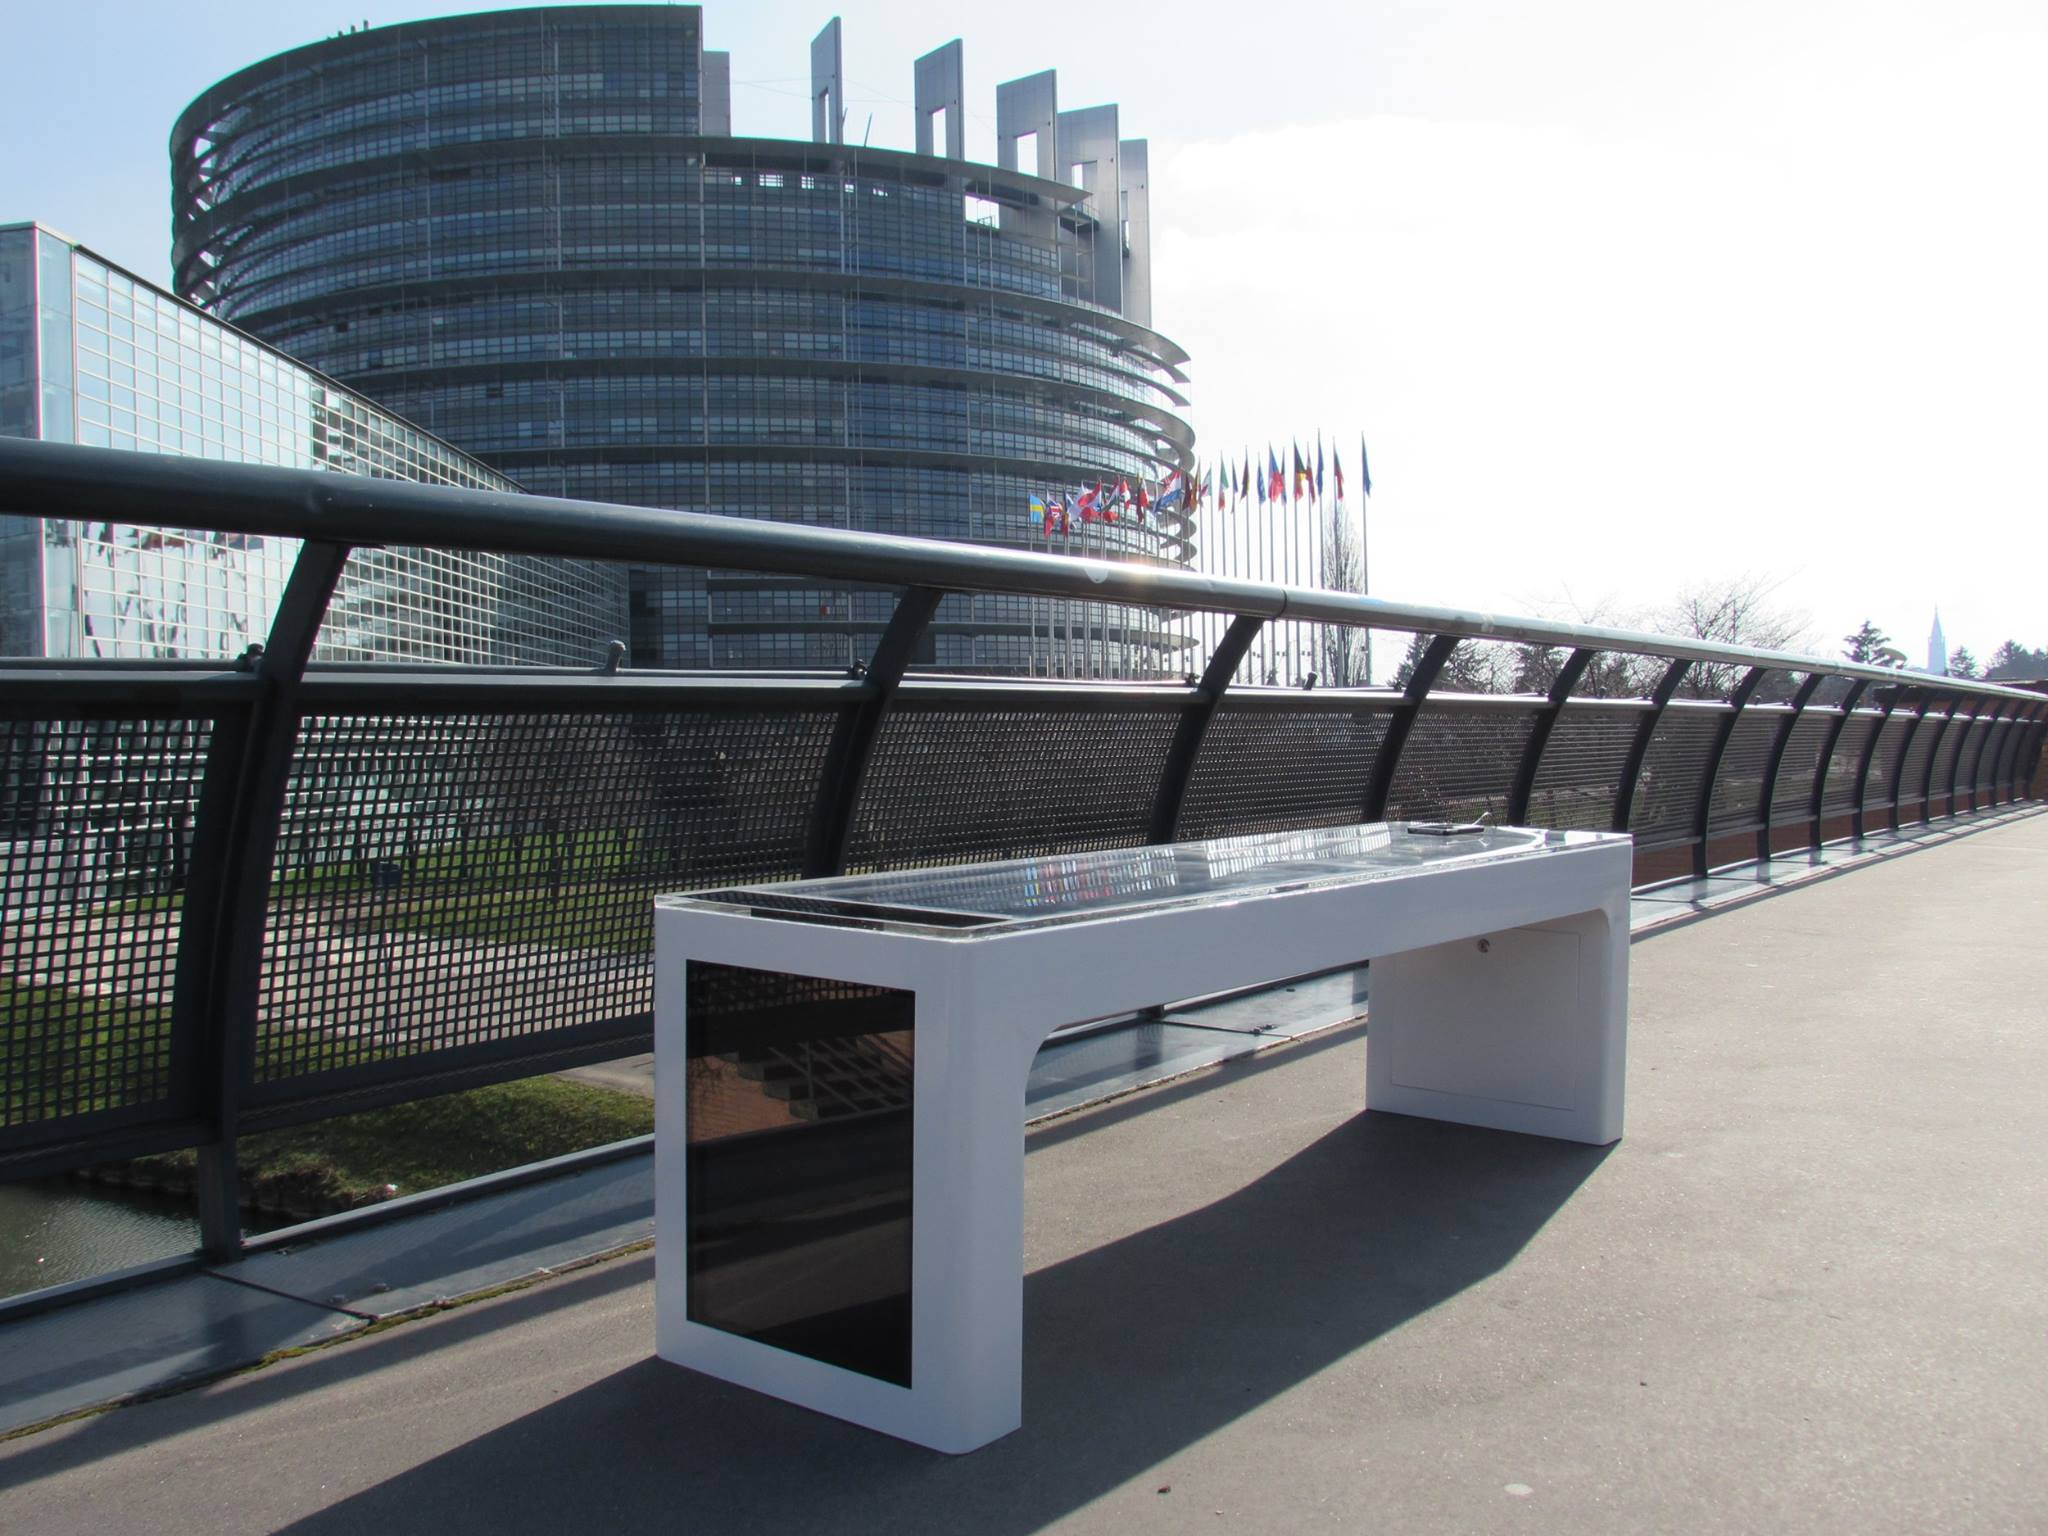 Bench in front of the European Parliament